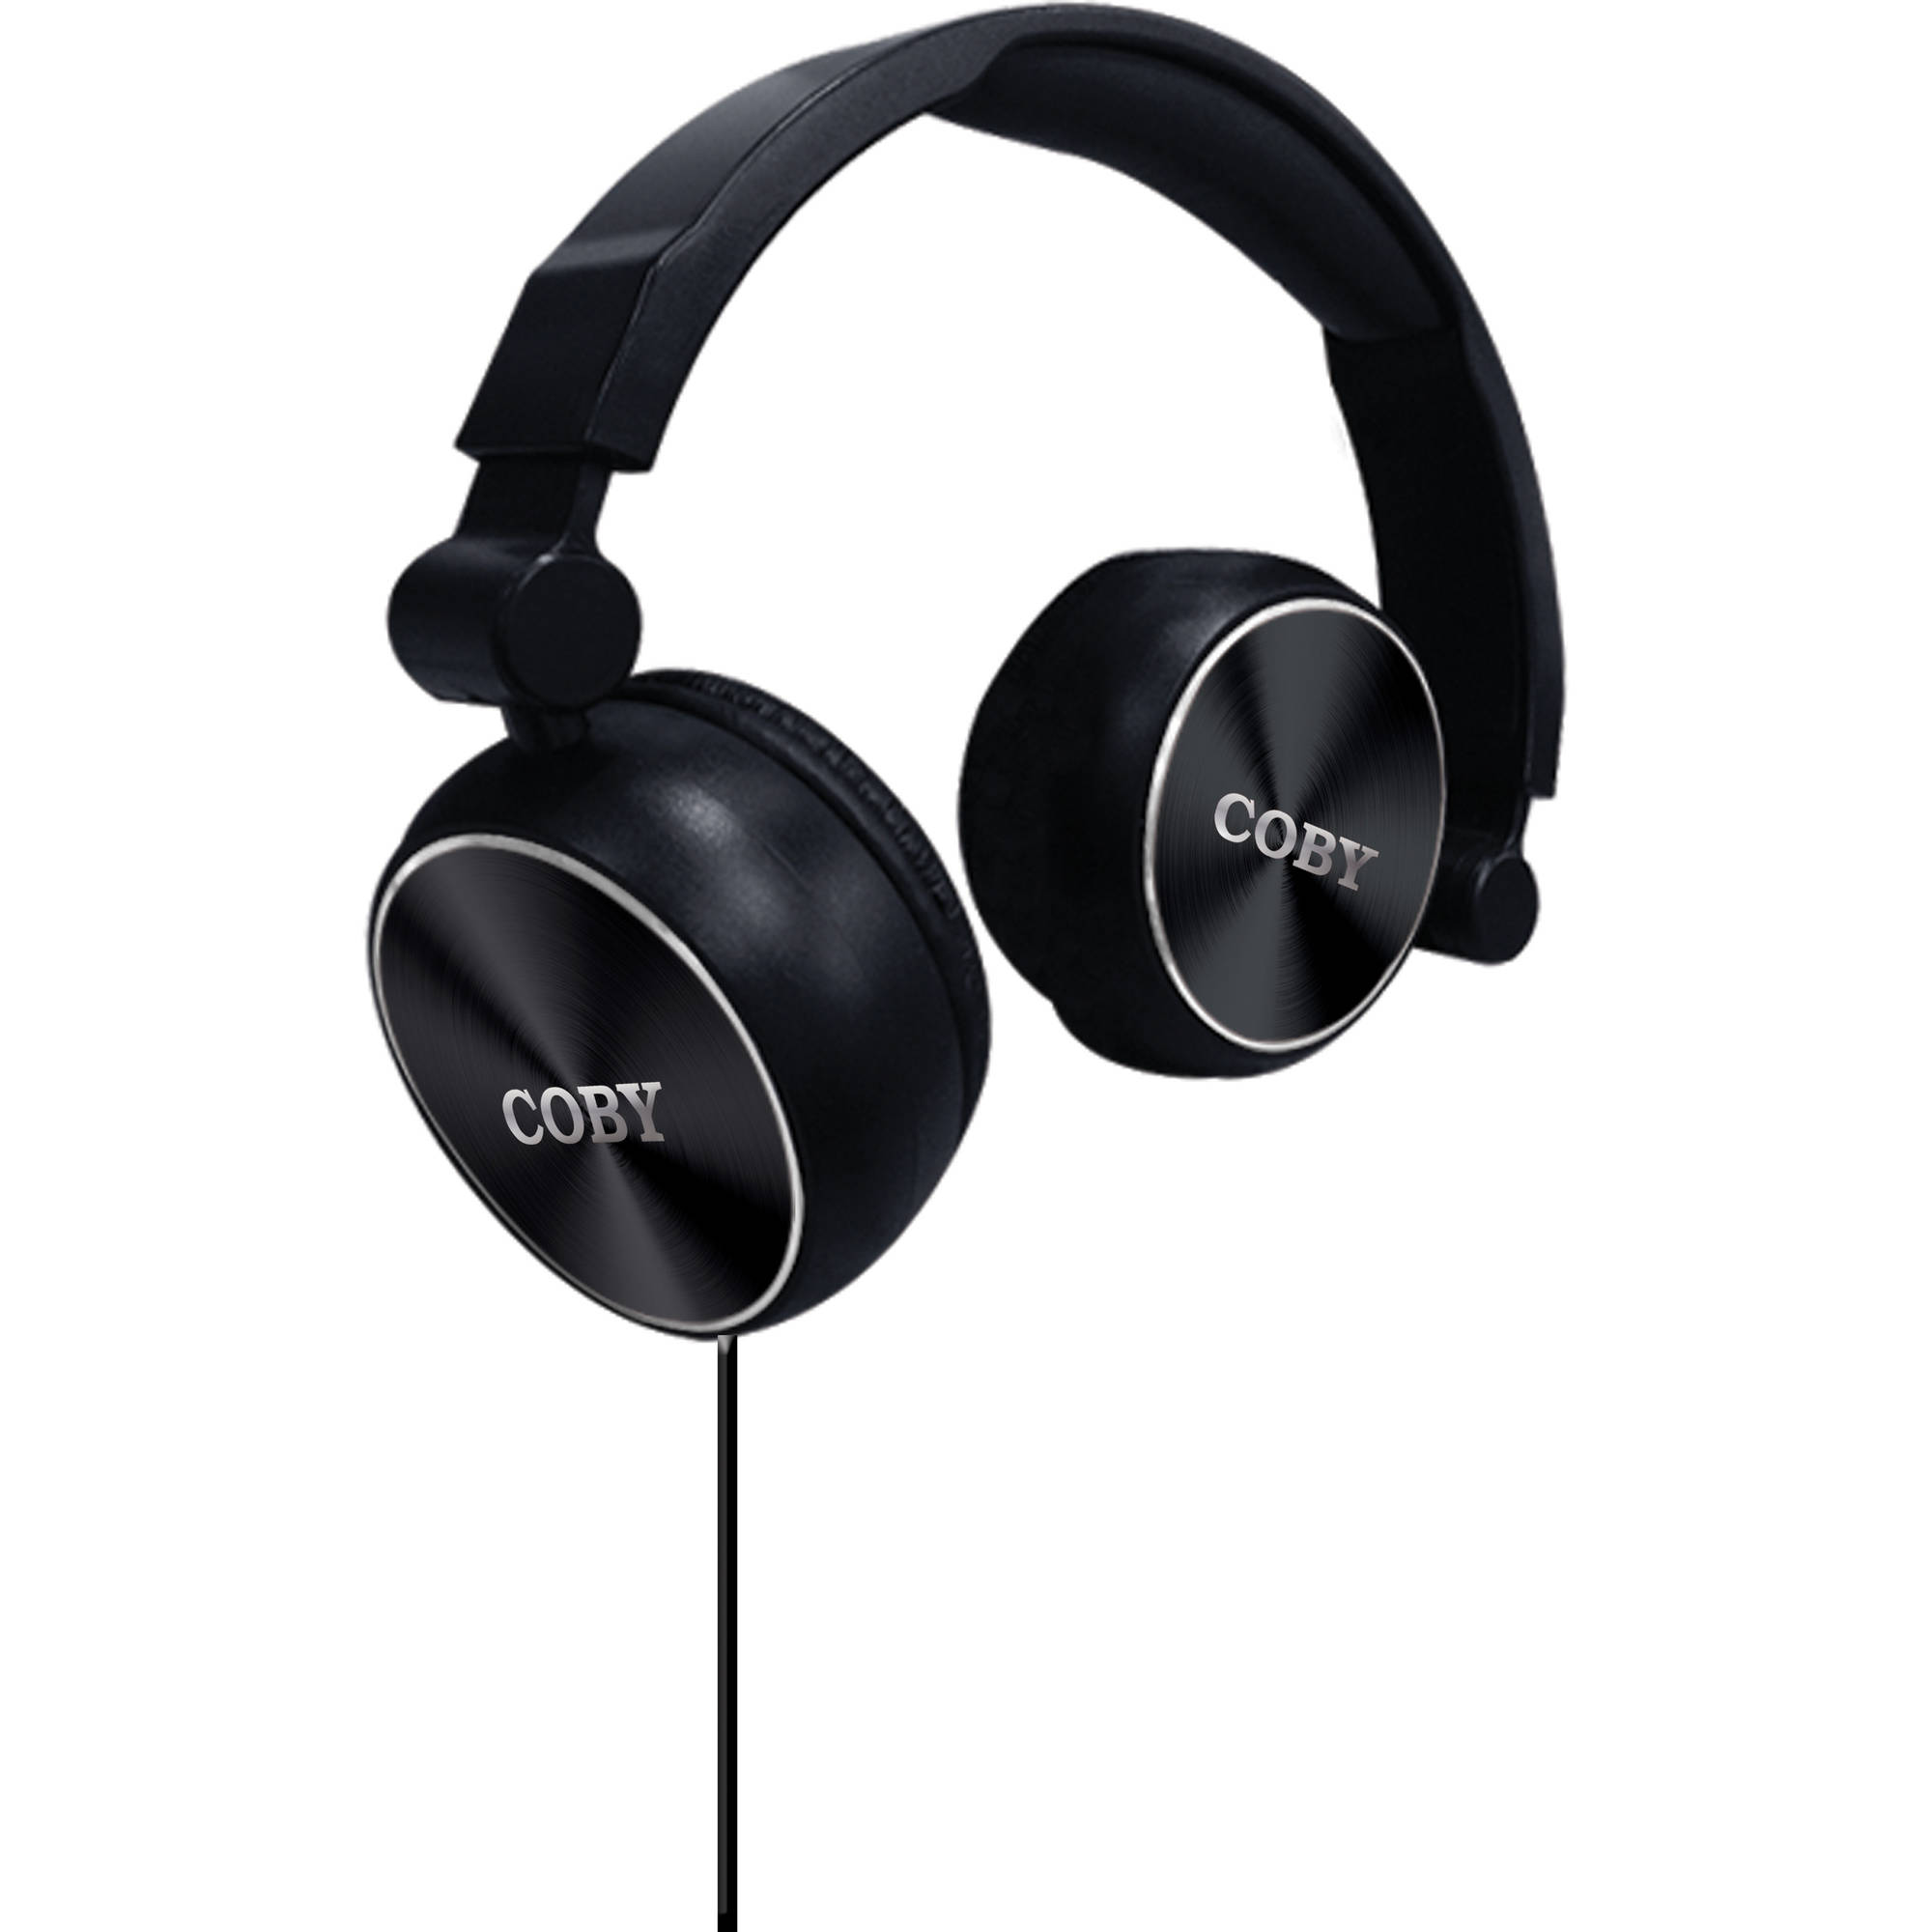 Coby Aluminum Foldz Headphones with Built-in Microphone